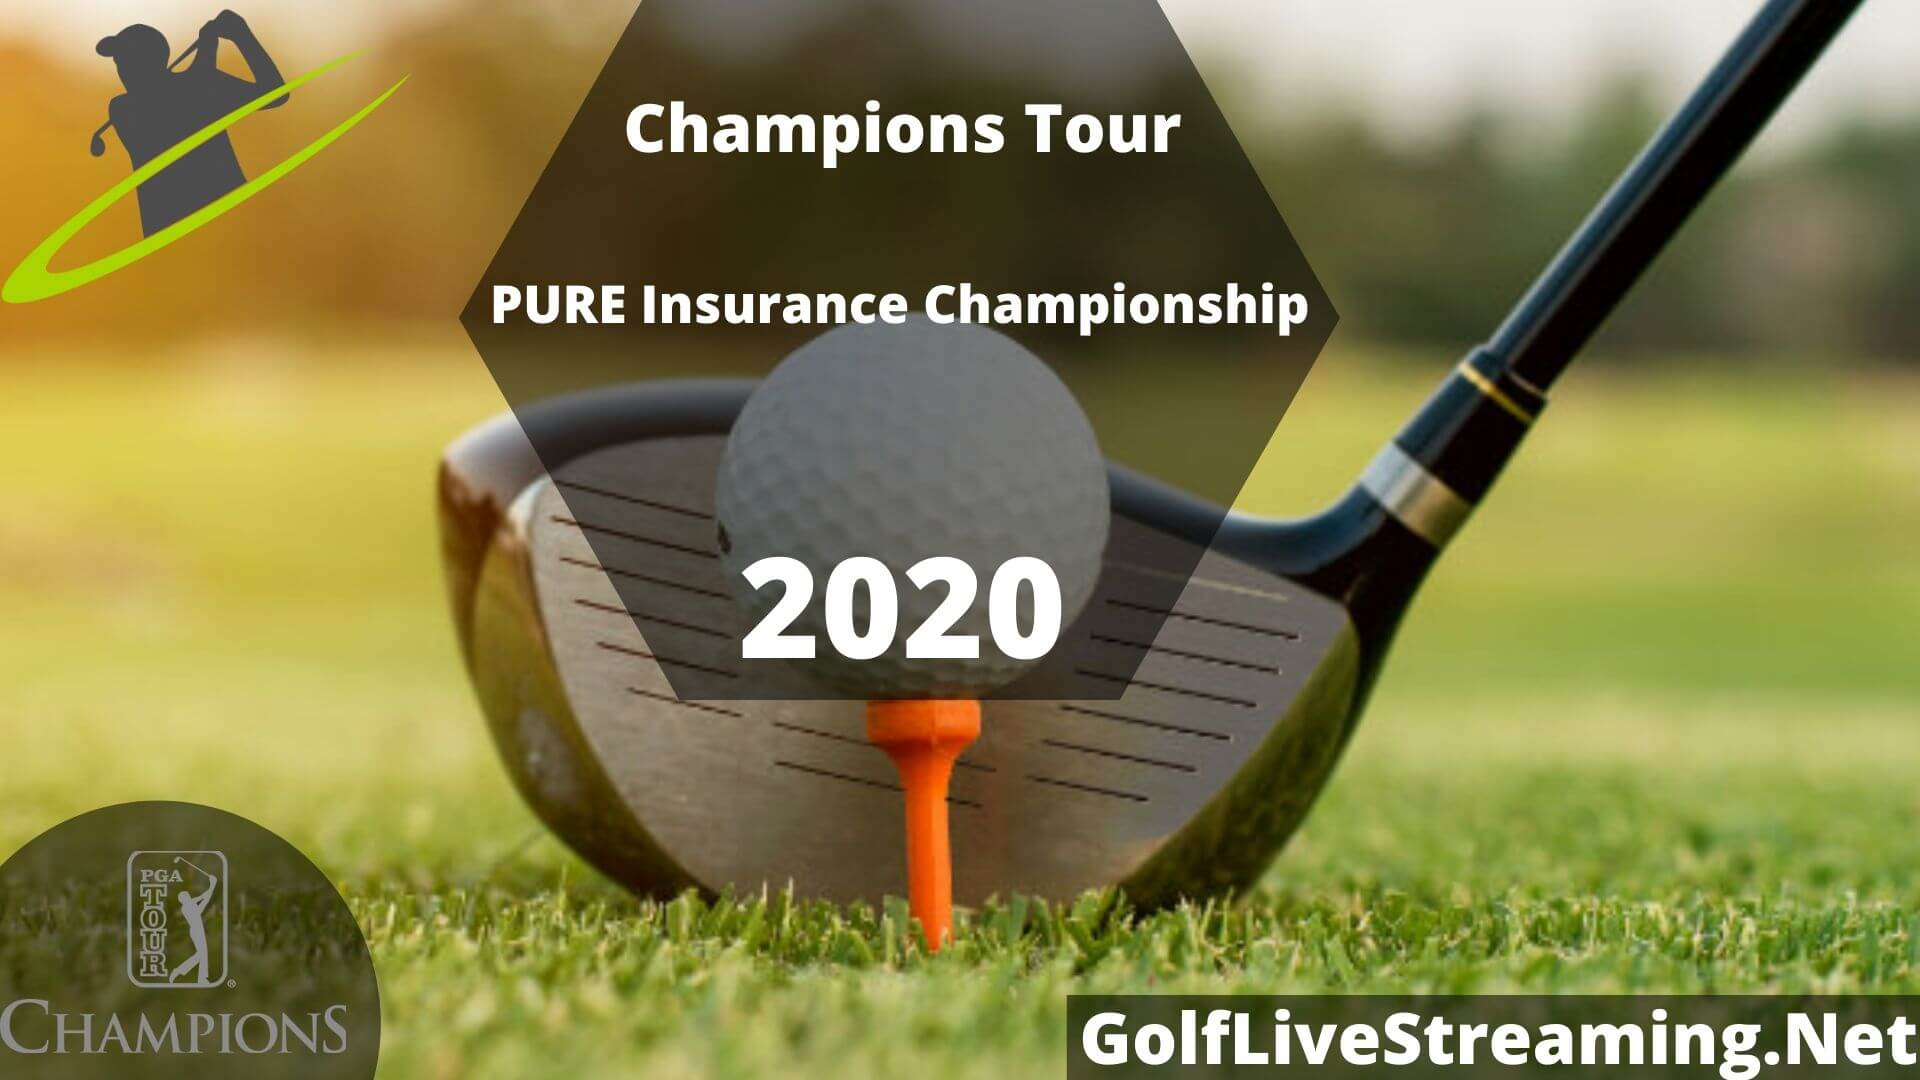 PURE Insurance Championship Live Stream 2020 | Champions Tour Round 2